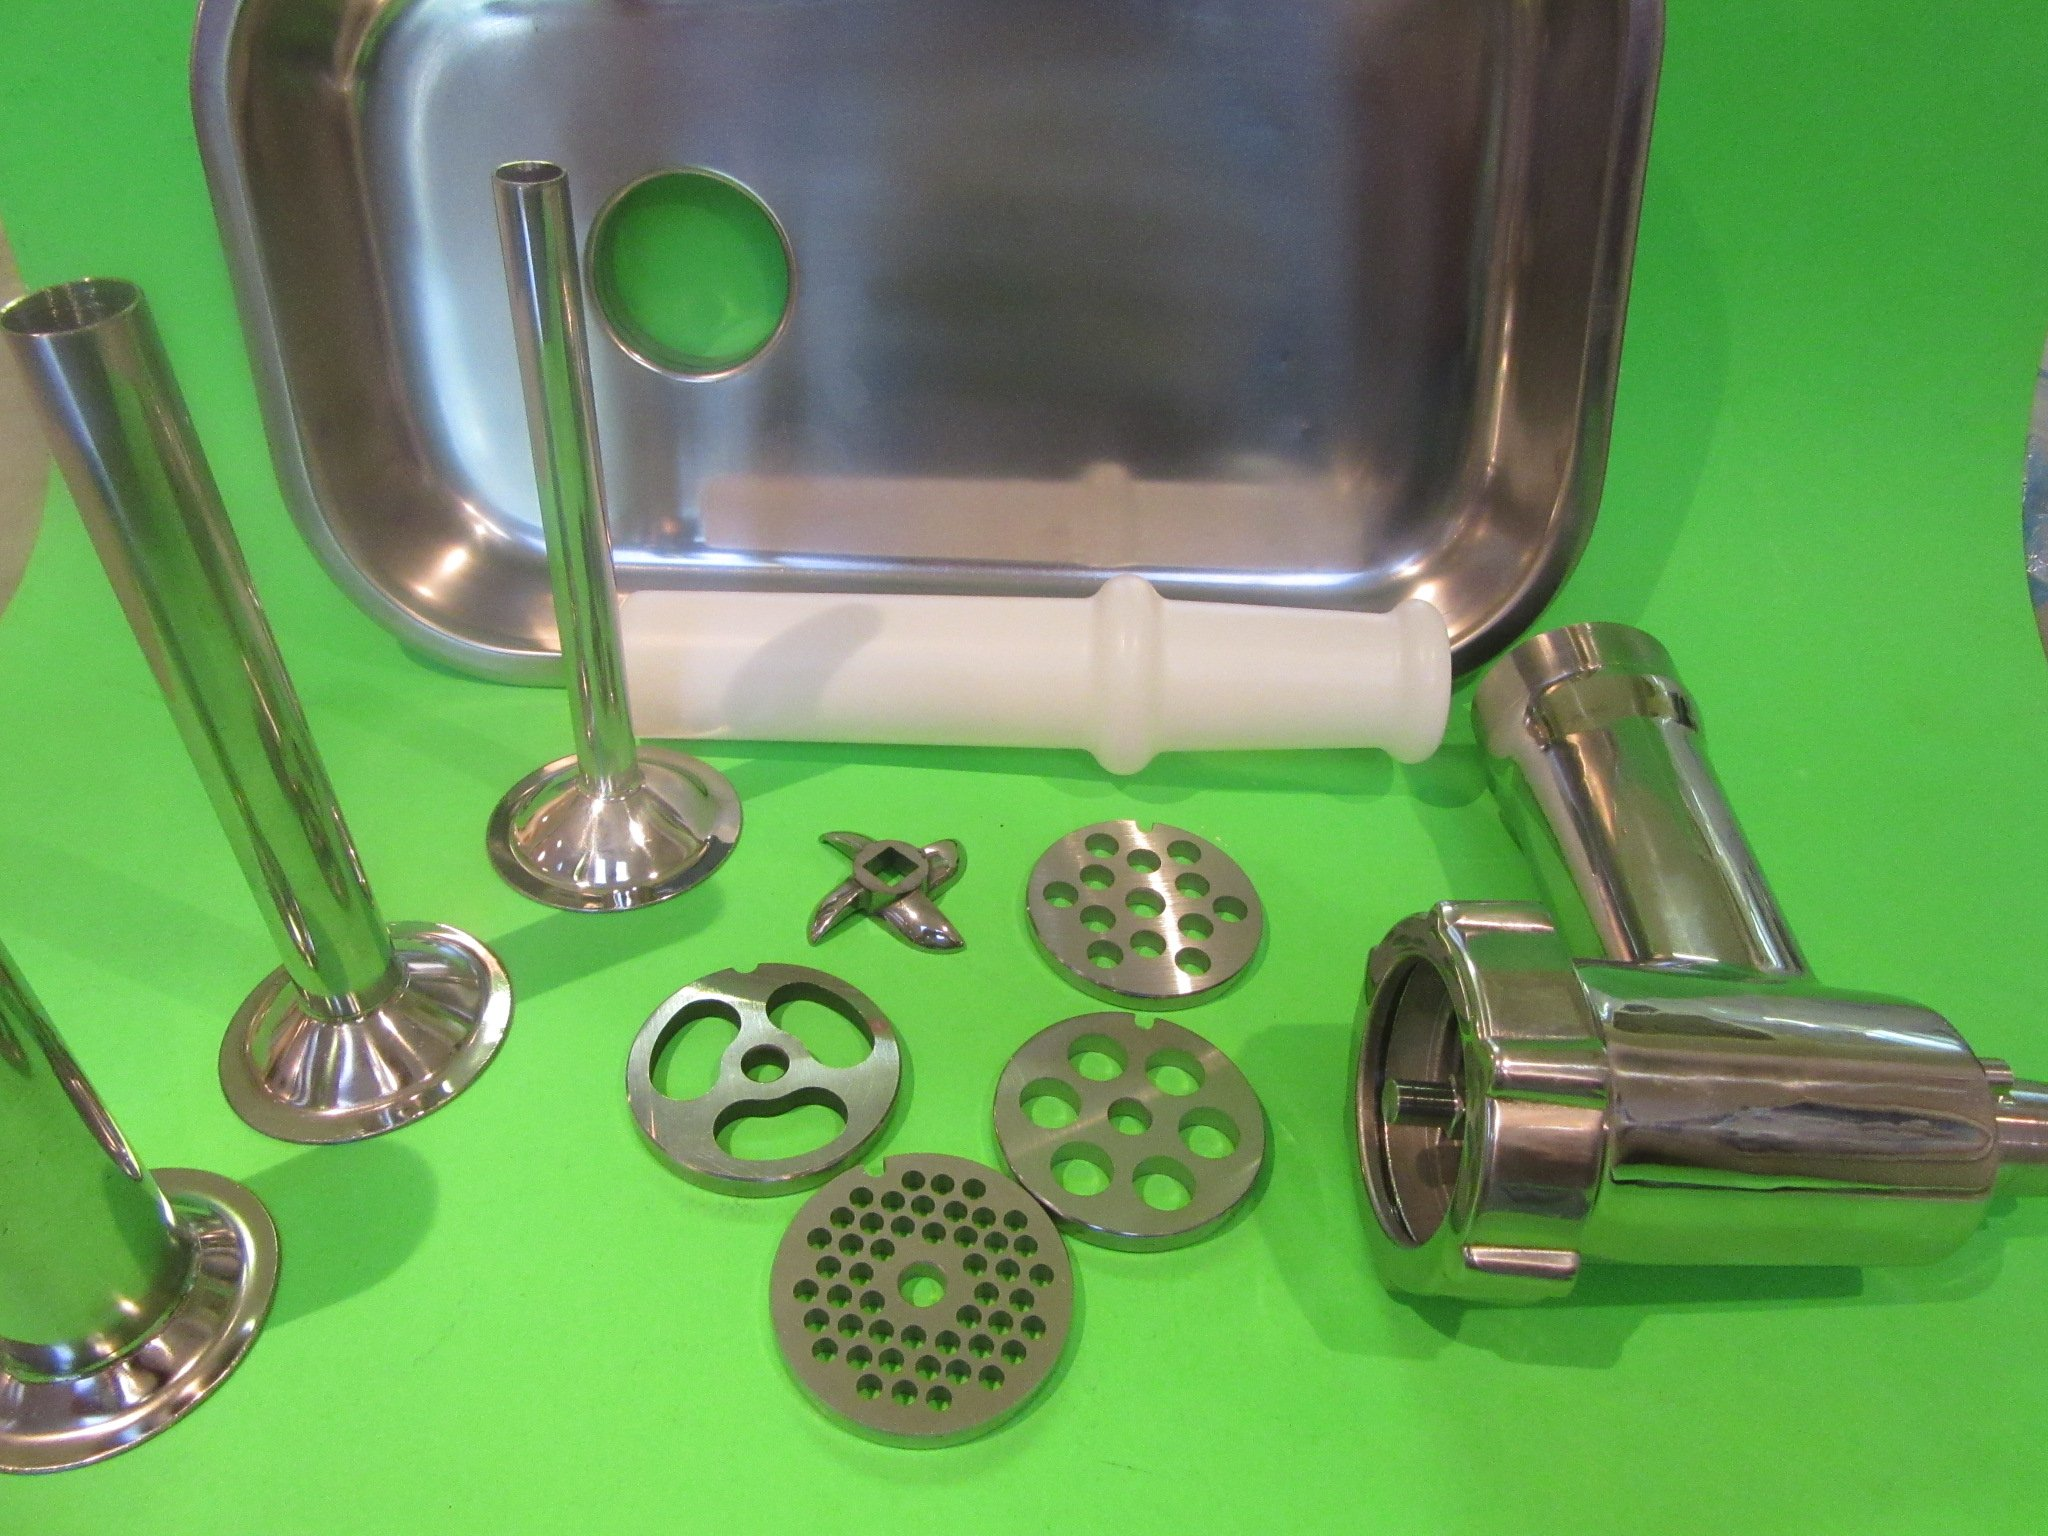 Original Stainless Steel Meat Grinder for Kitchenaid Mixer with Sausage Making Kit by Smokehouse Chef (Image #8)